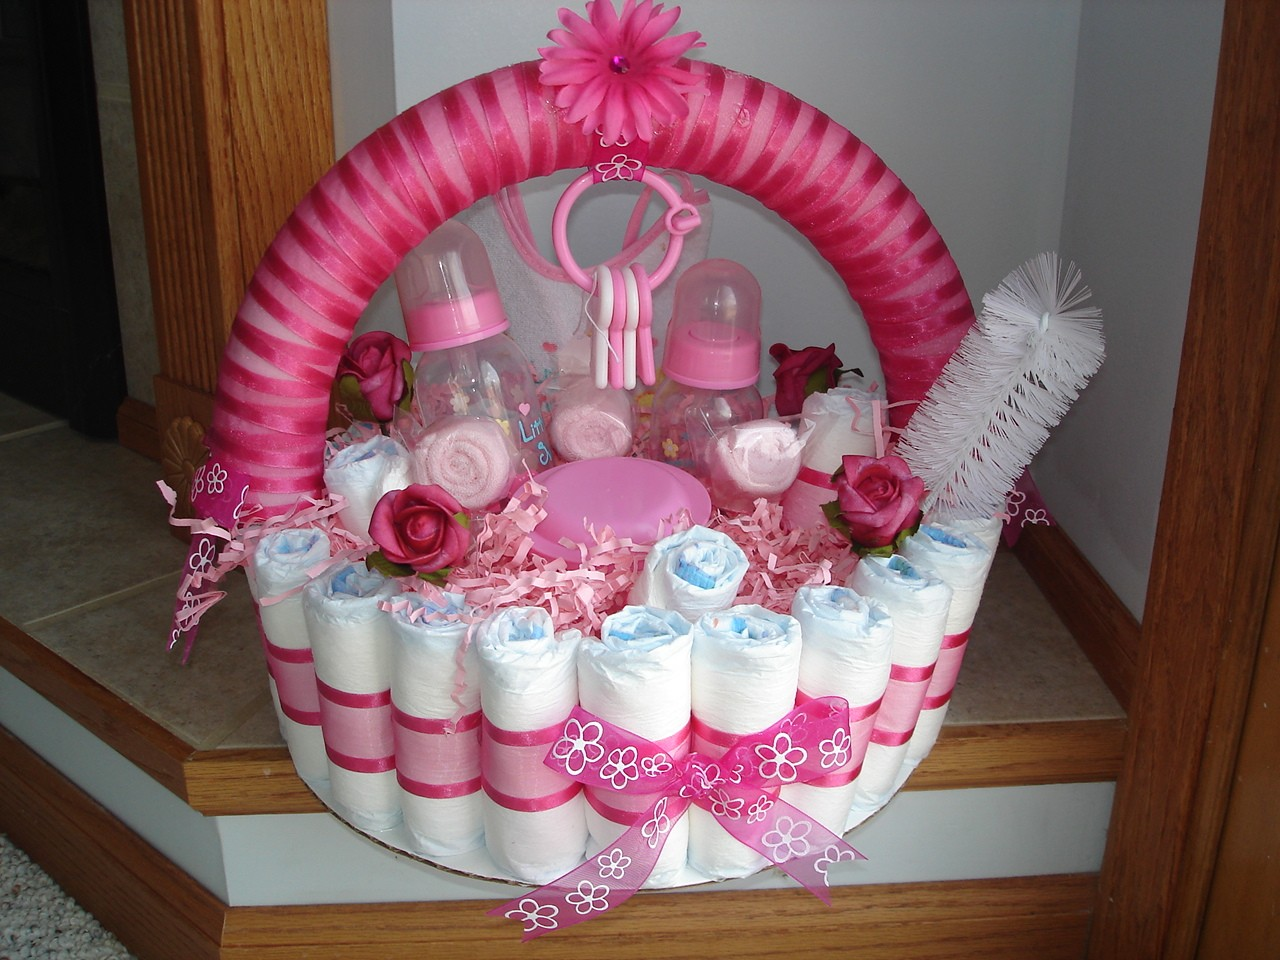 Diaper Cake Centerpiece For Baby Shower : Baby Shower Cakes: Baby Shower Diaper Cake Gift Ideas